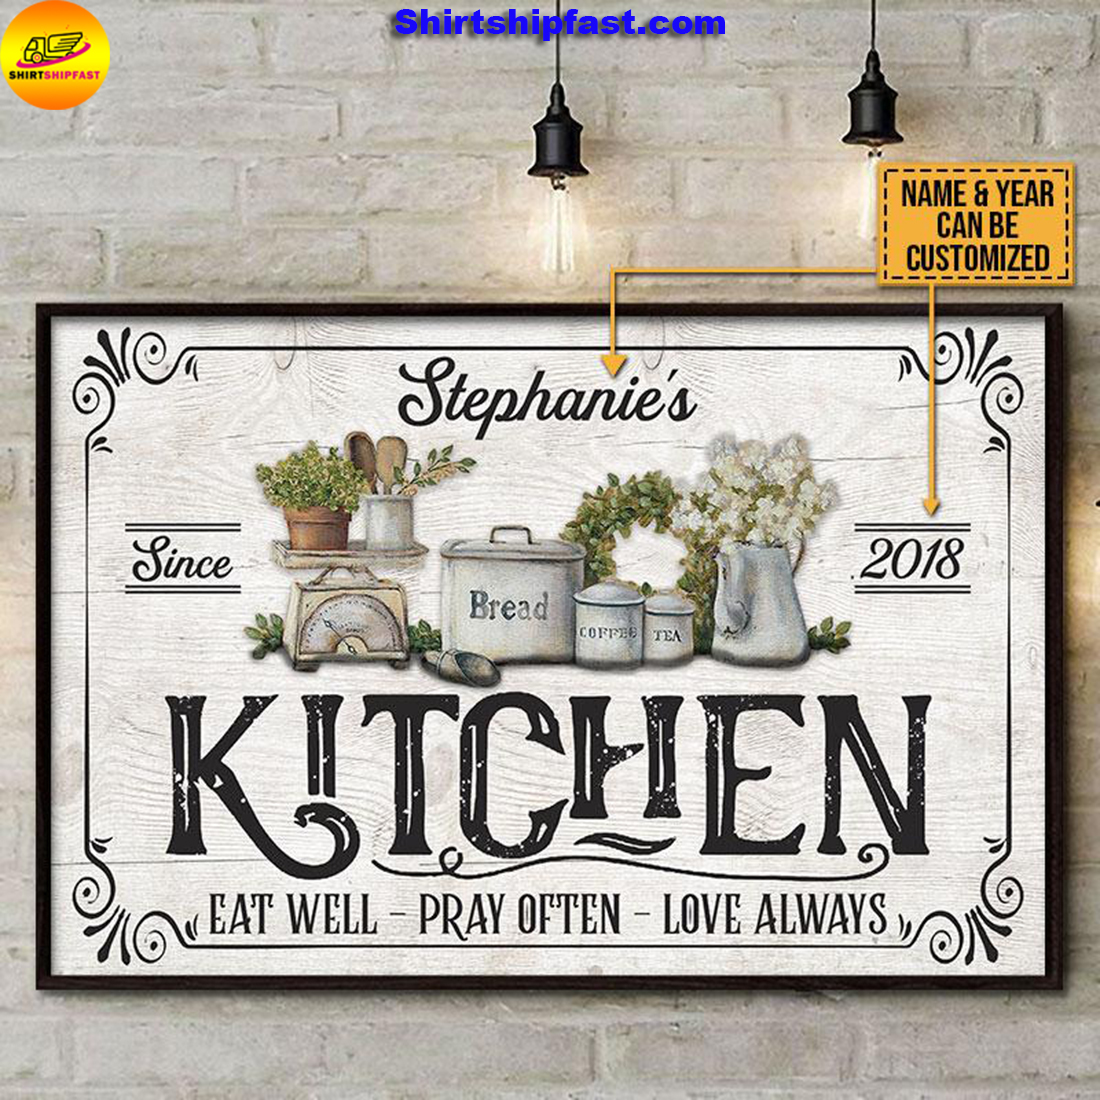 Personalized Farmhouse Kitchen Love Always Customized Poster - Picture 3